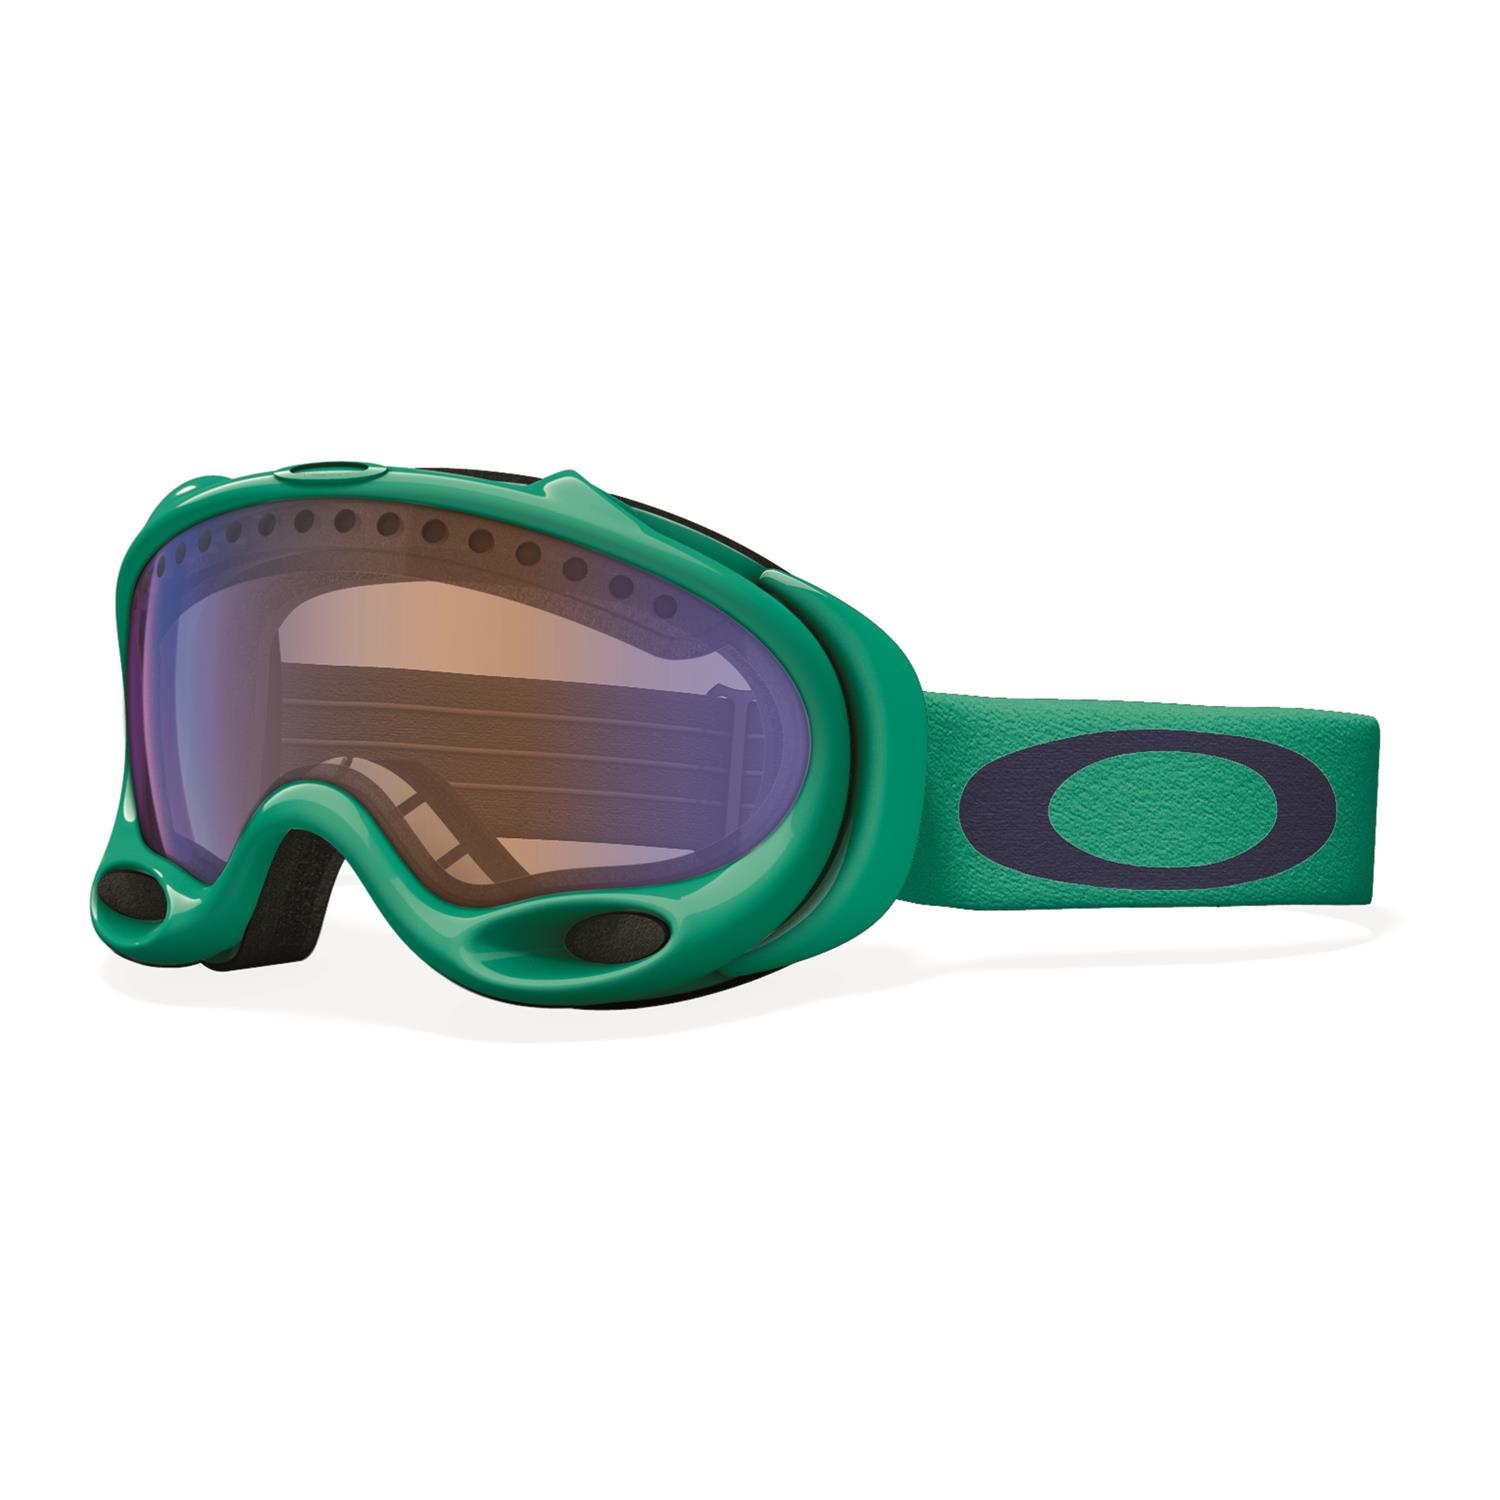 Oakley A Frame Goggles Evo Outlet